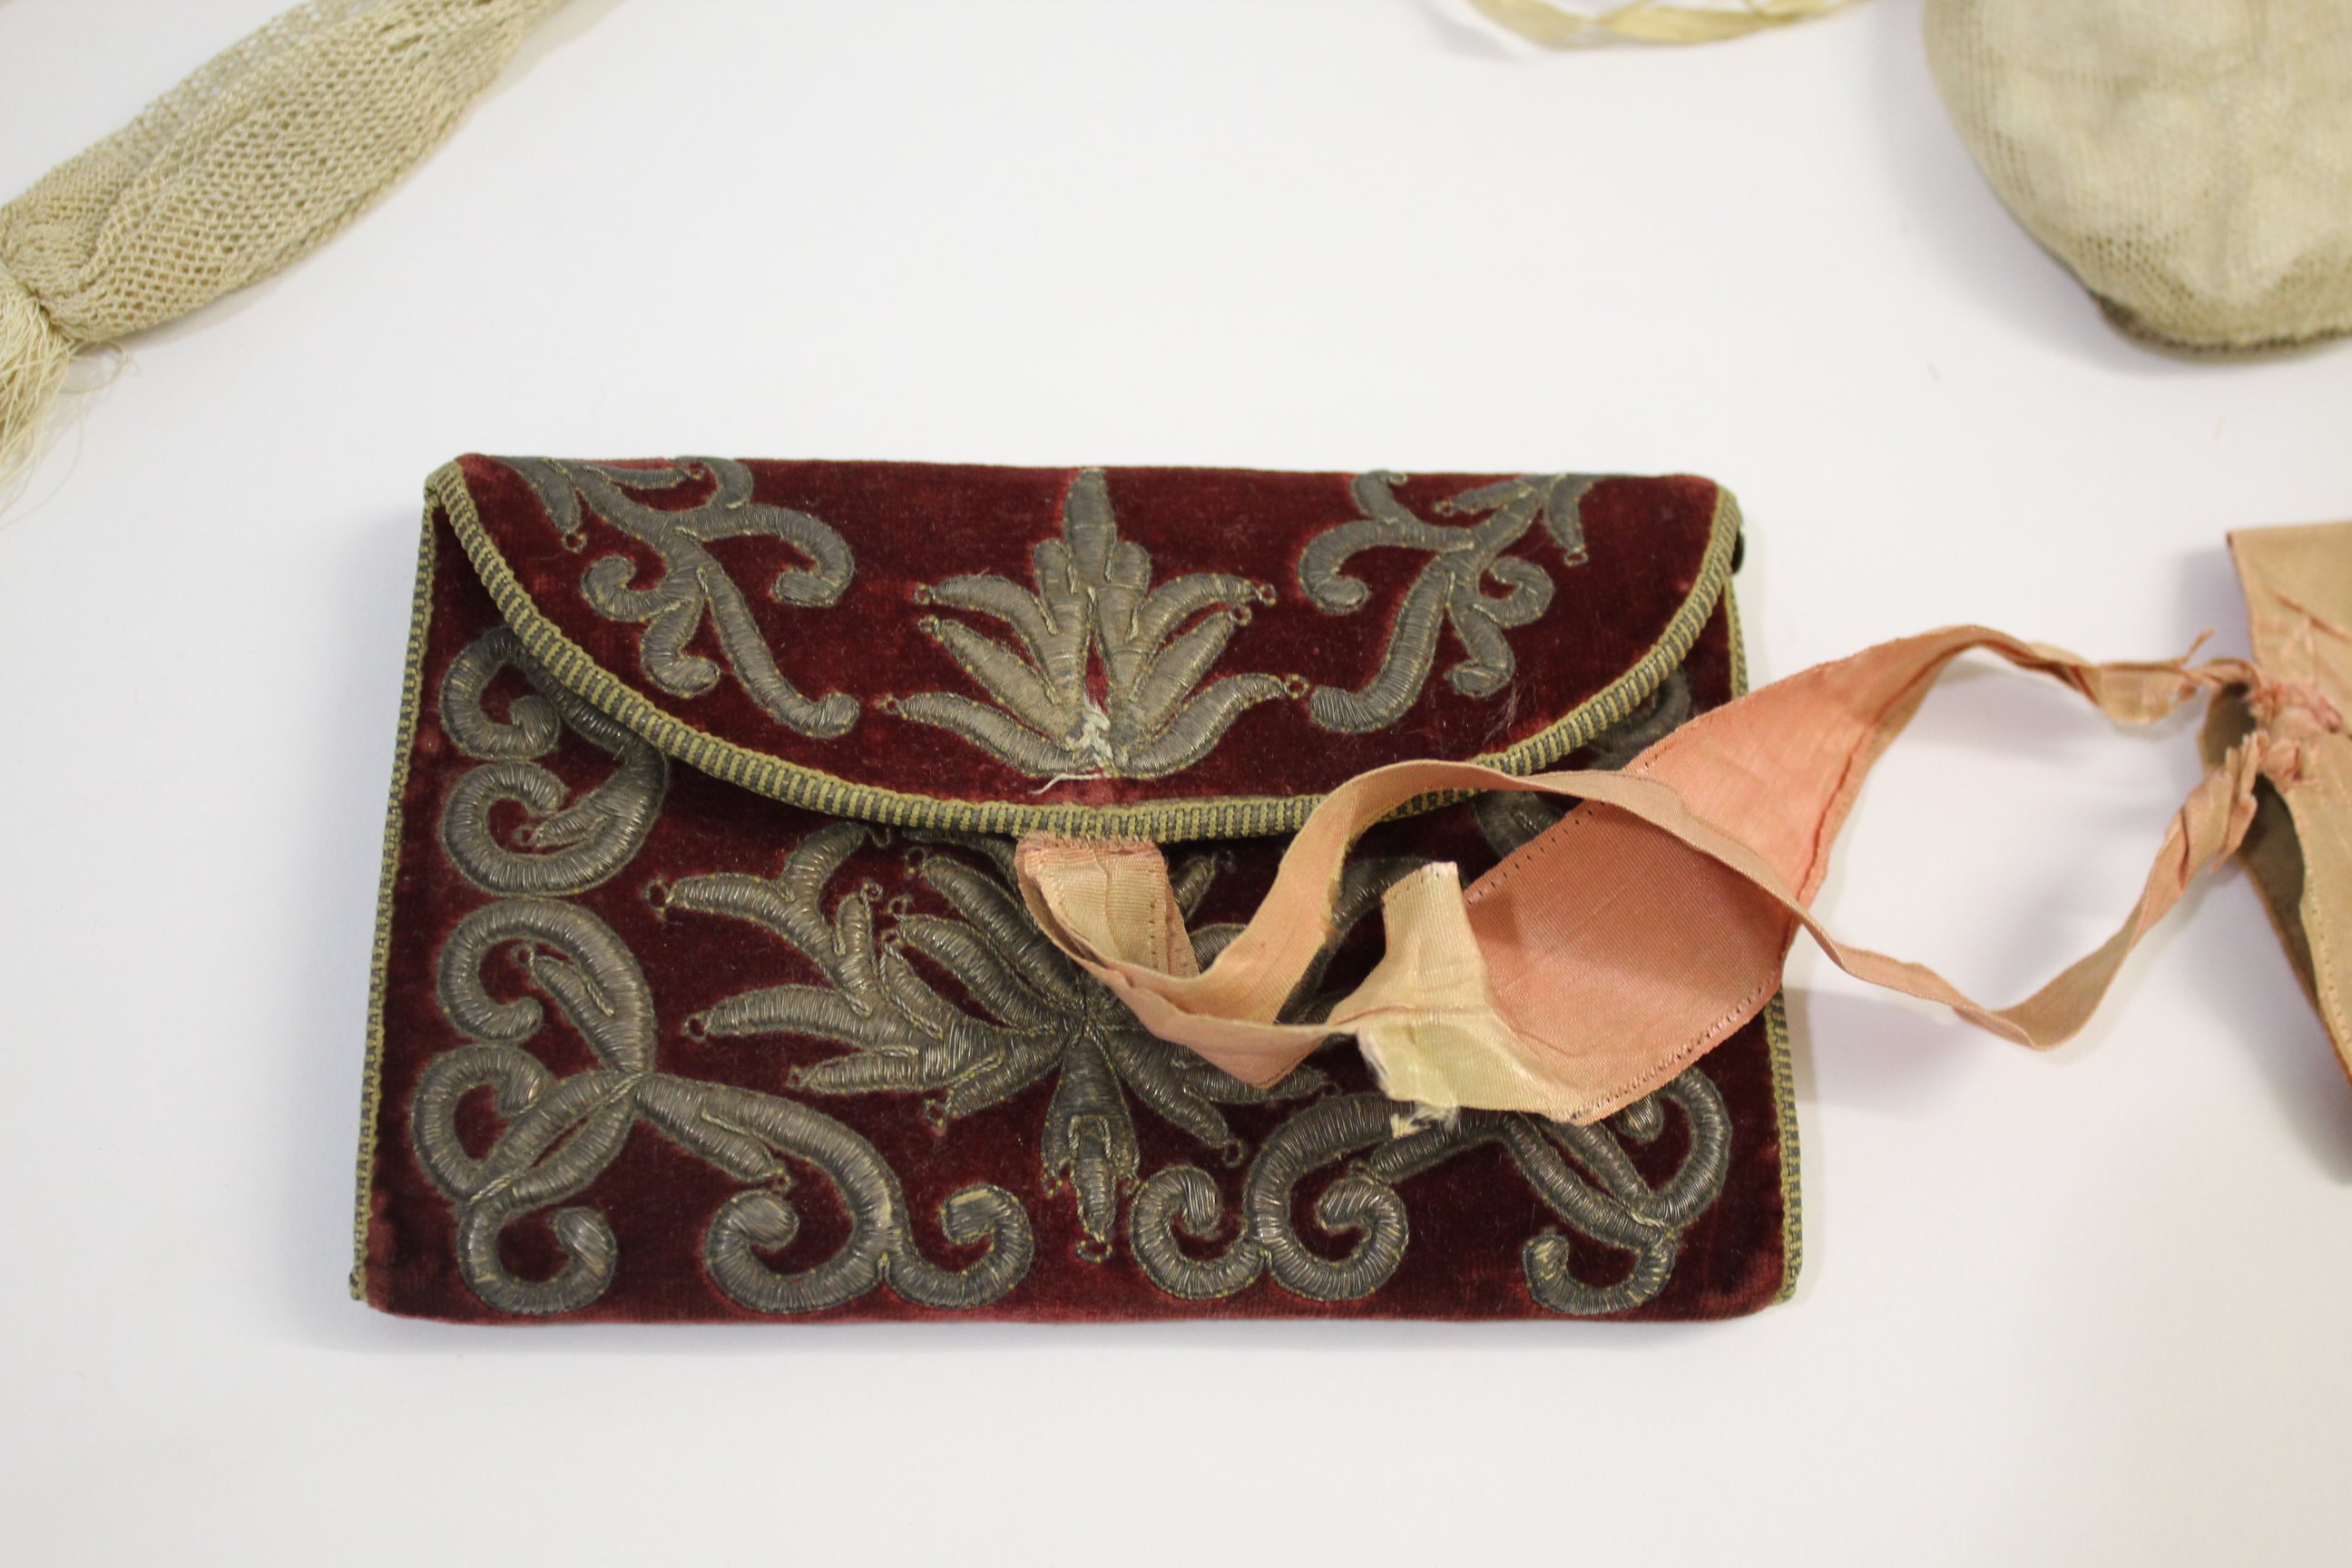 18THC CARD CASE & VINTAGE PURSES a late 18thc dark red velvet card case with metallic thread - Image 2 of 11